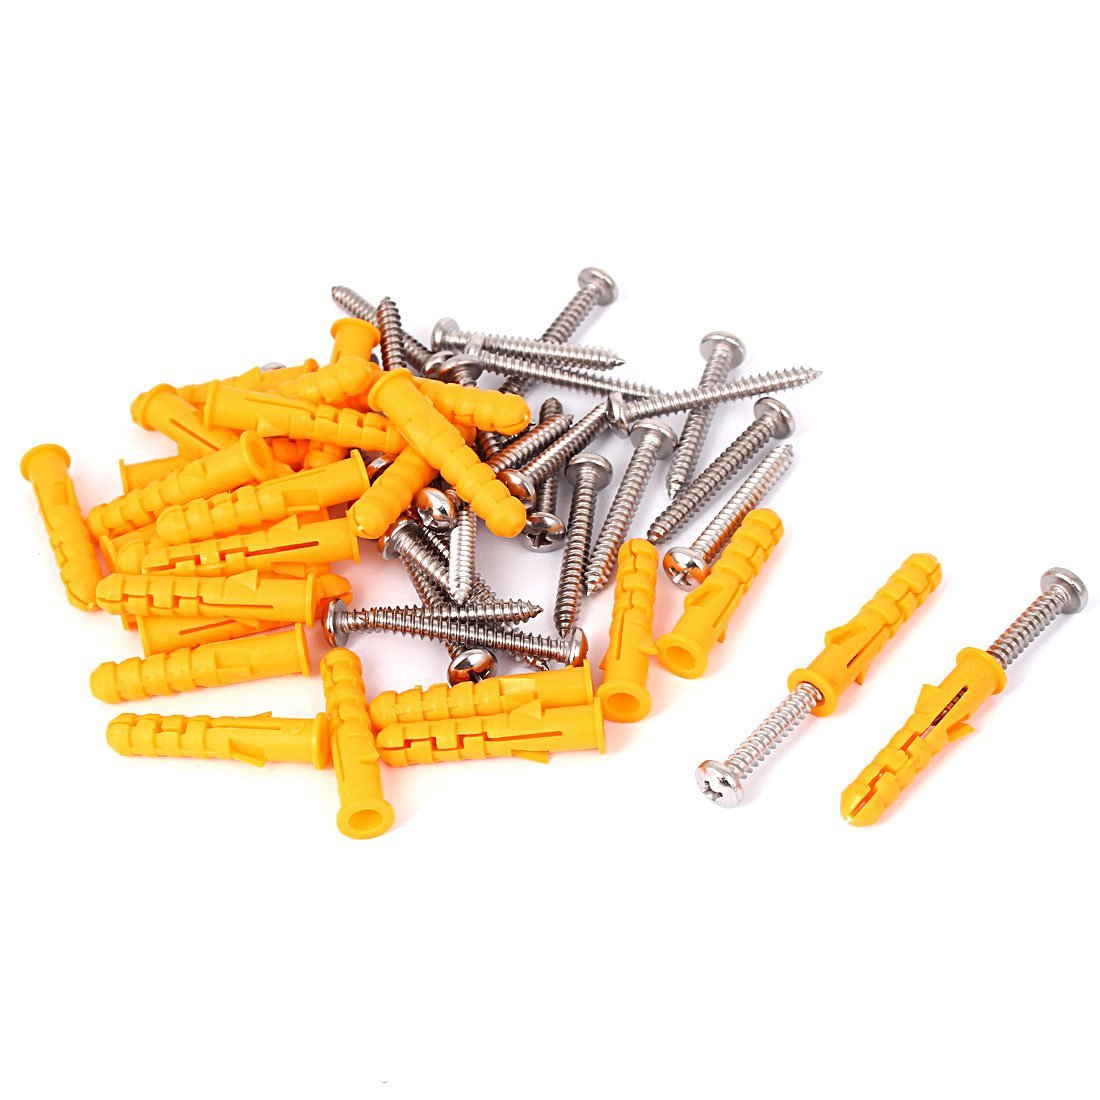 Uxcell a16031800ux1299 25pcs 8x40mm Plastic Wall Screw Anchor Plugs with Philip Round Head Screw